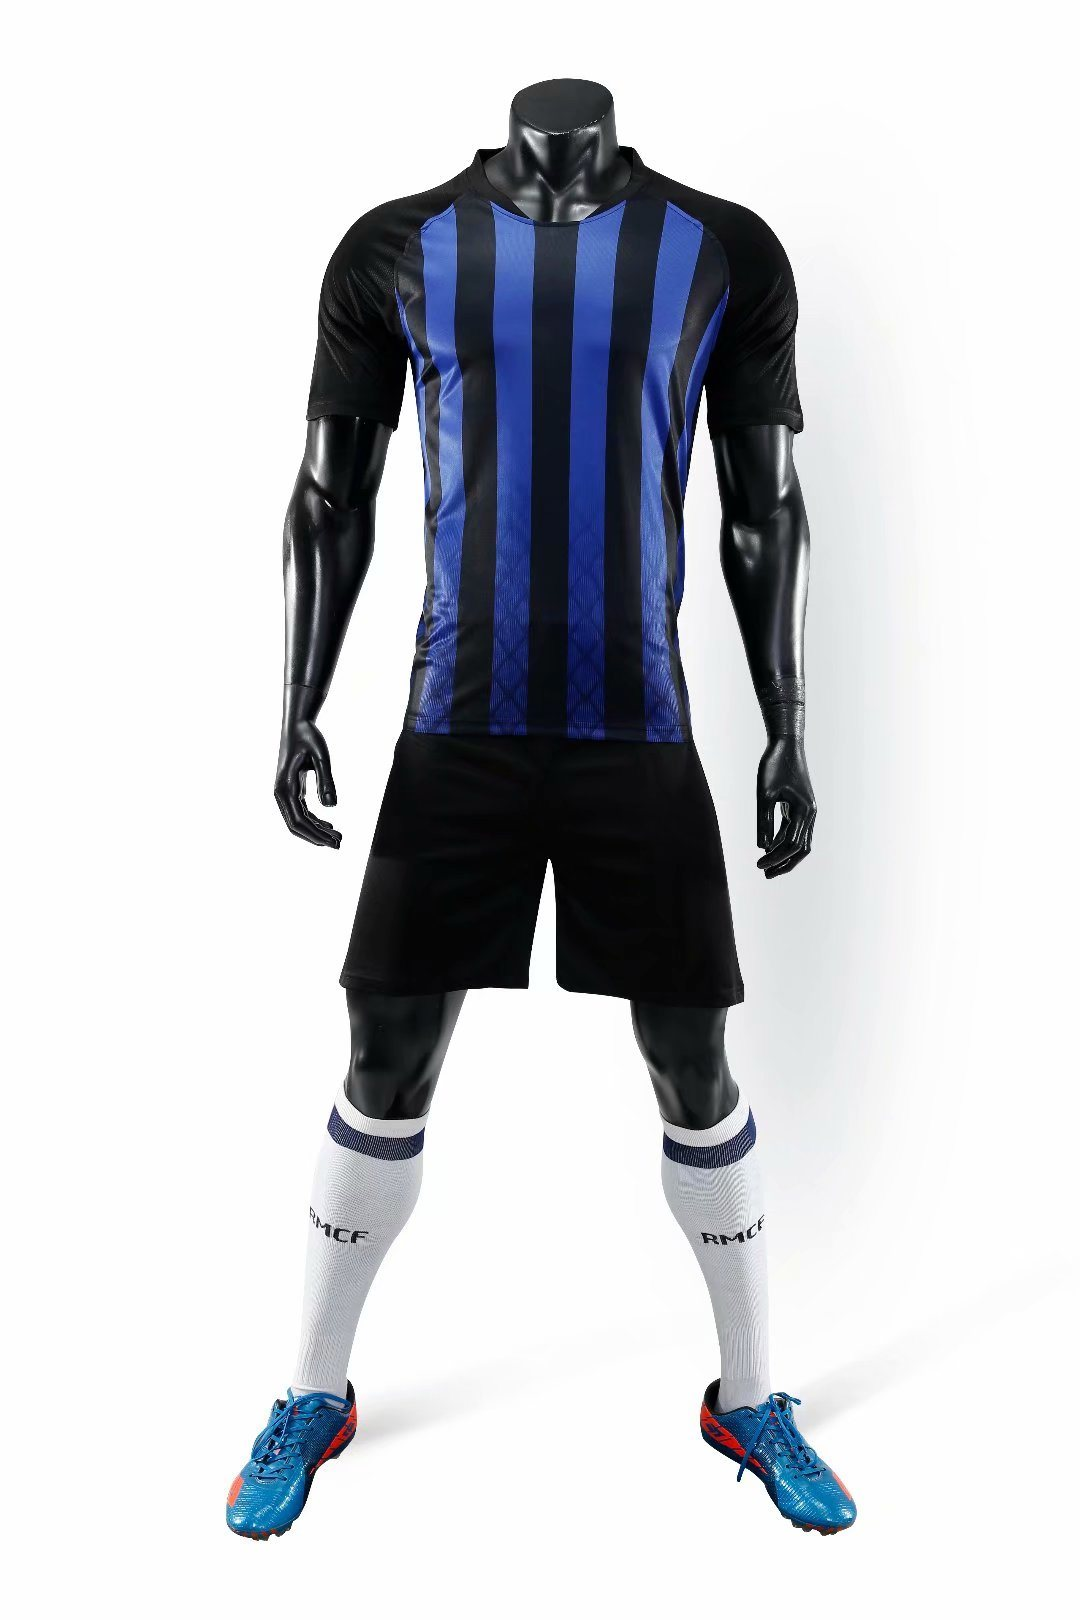 online retailer 70542 8d286 [Hot Item] 2018/2019 Inter Milan Home Soccer Jerseys and Shorts